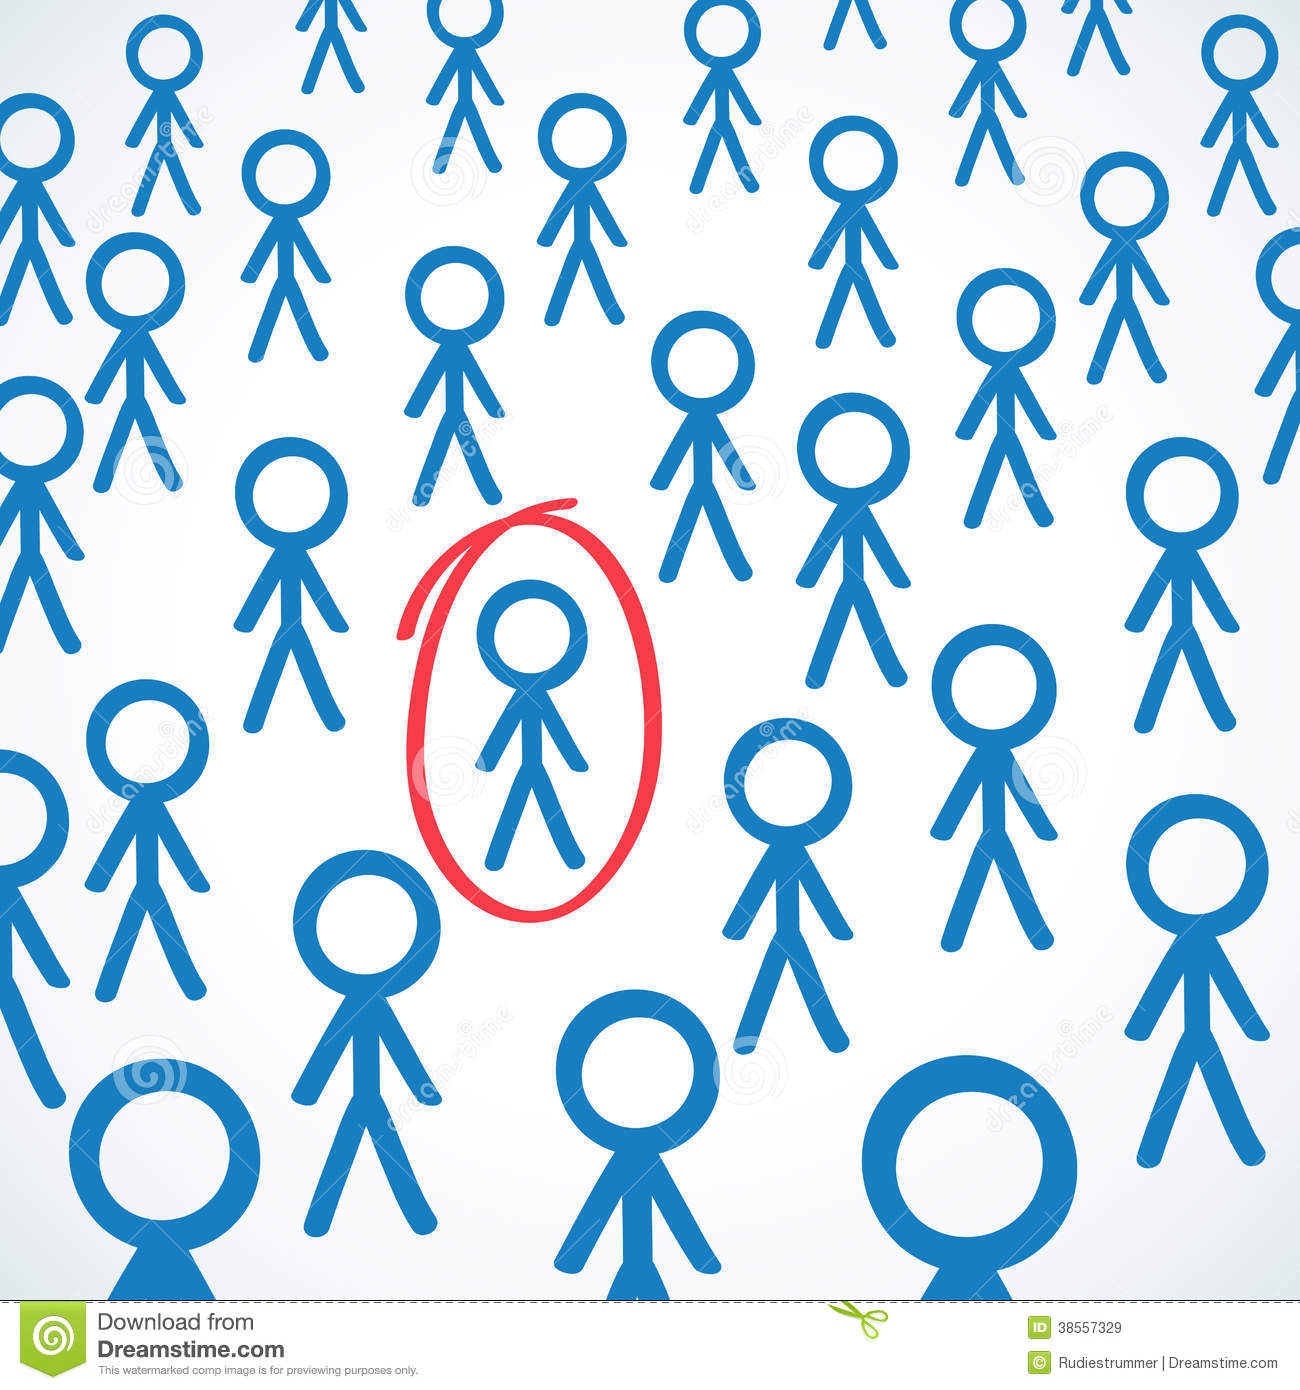 how to draw a crowd of stick figures